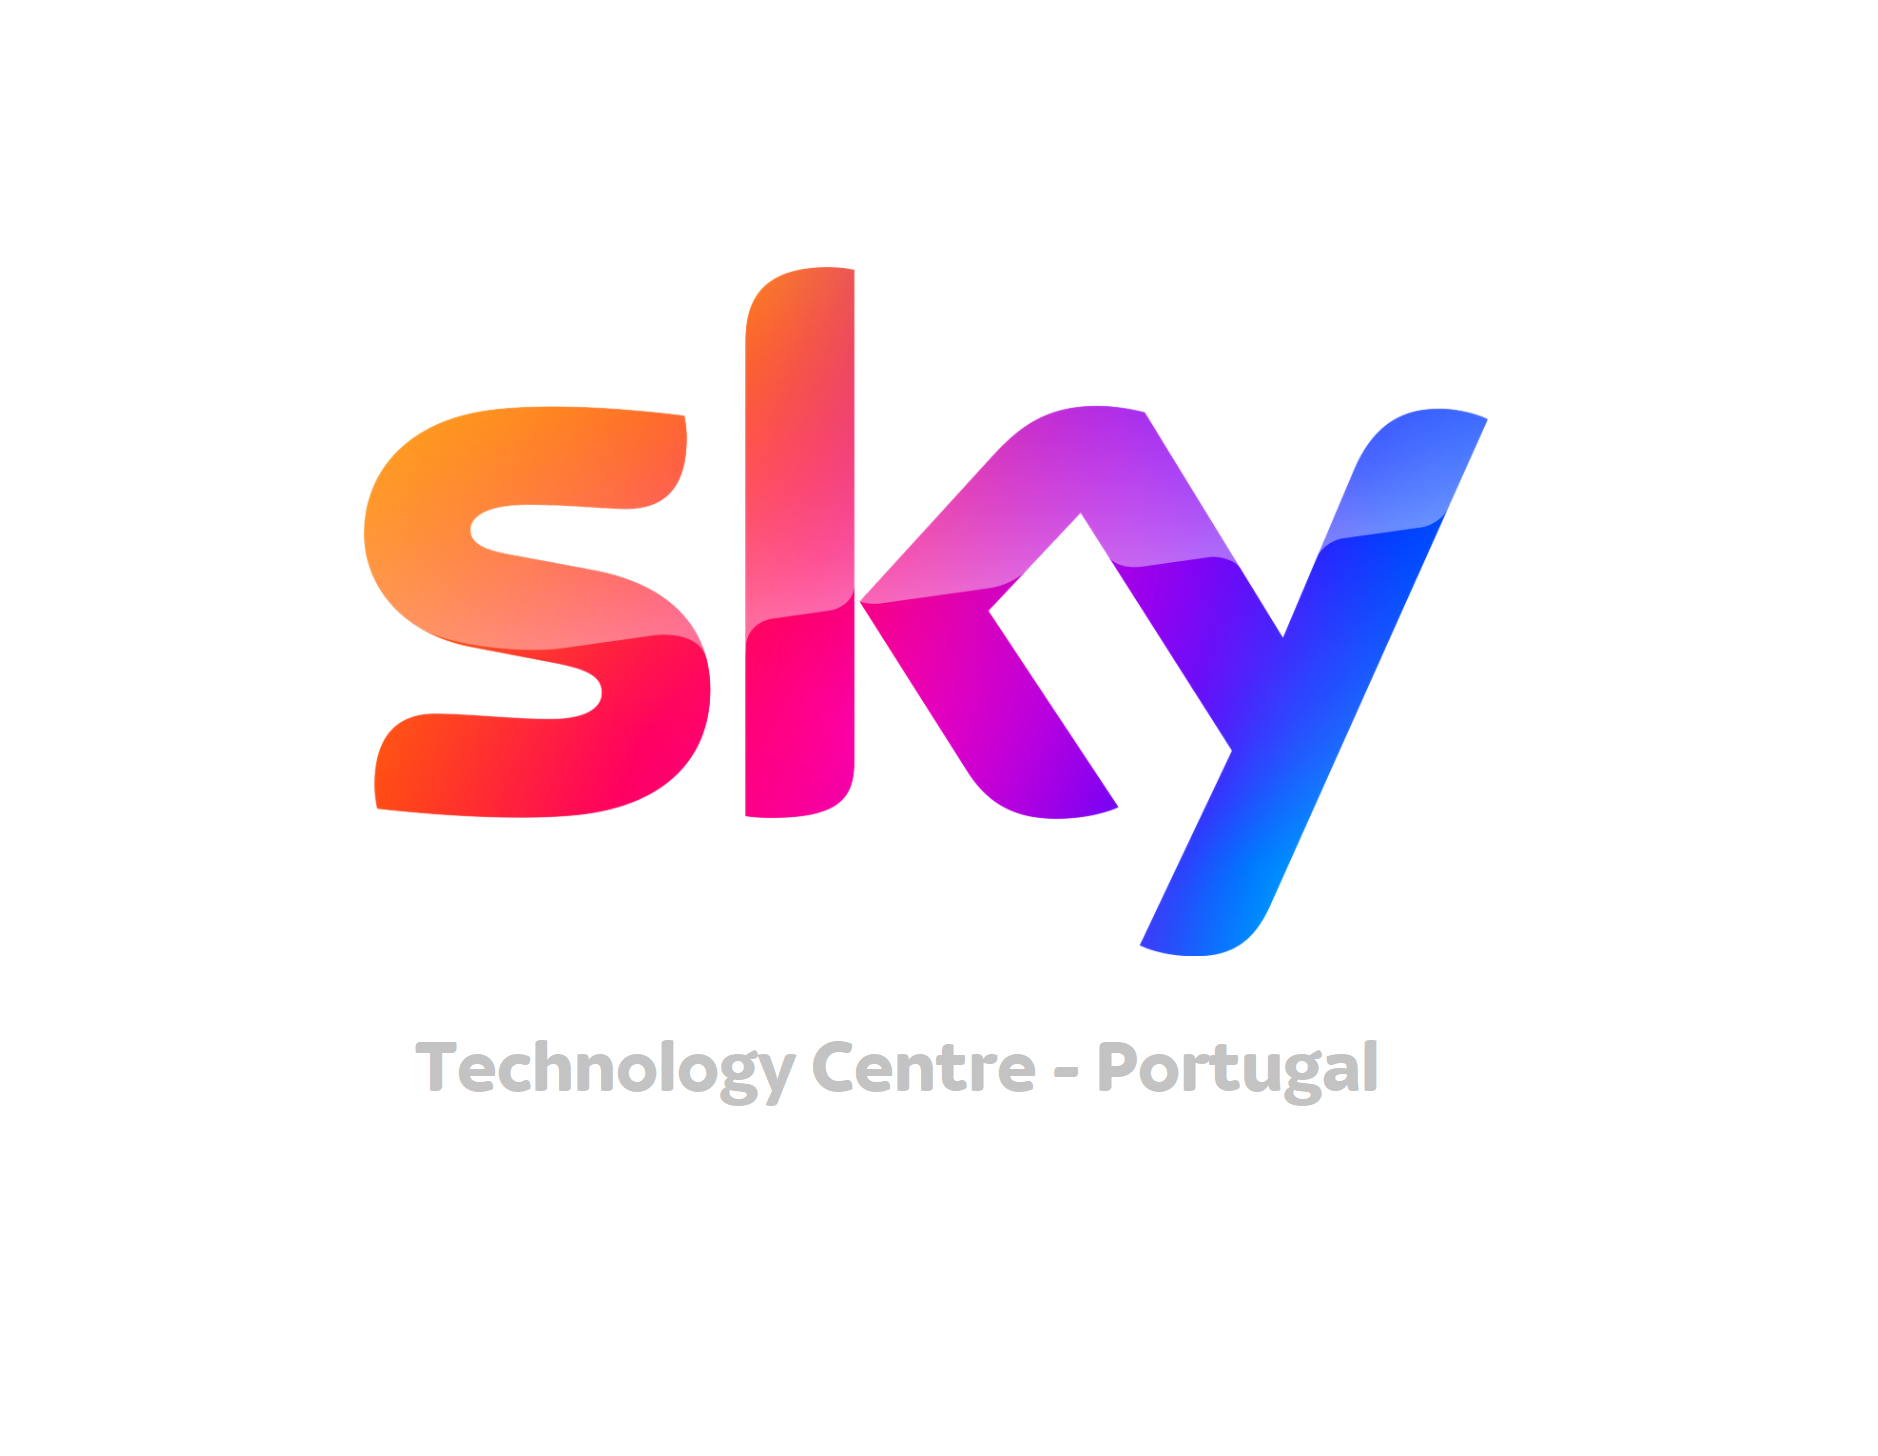 Sky Technology Centre – Portugal